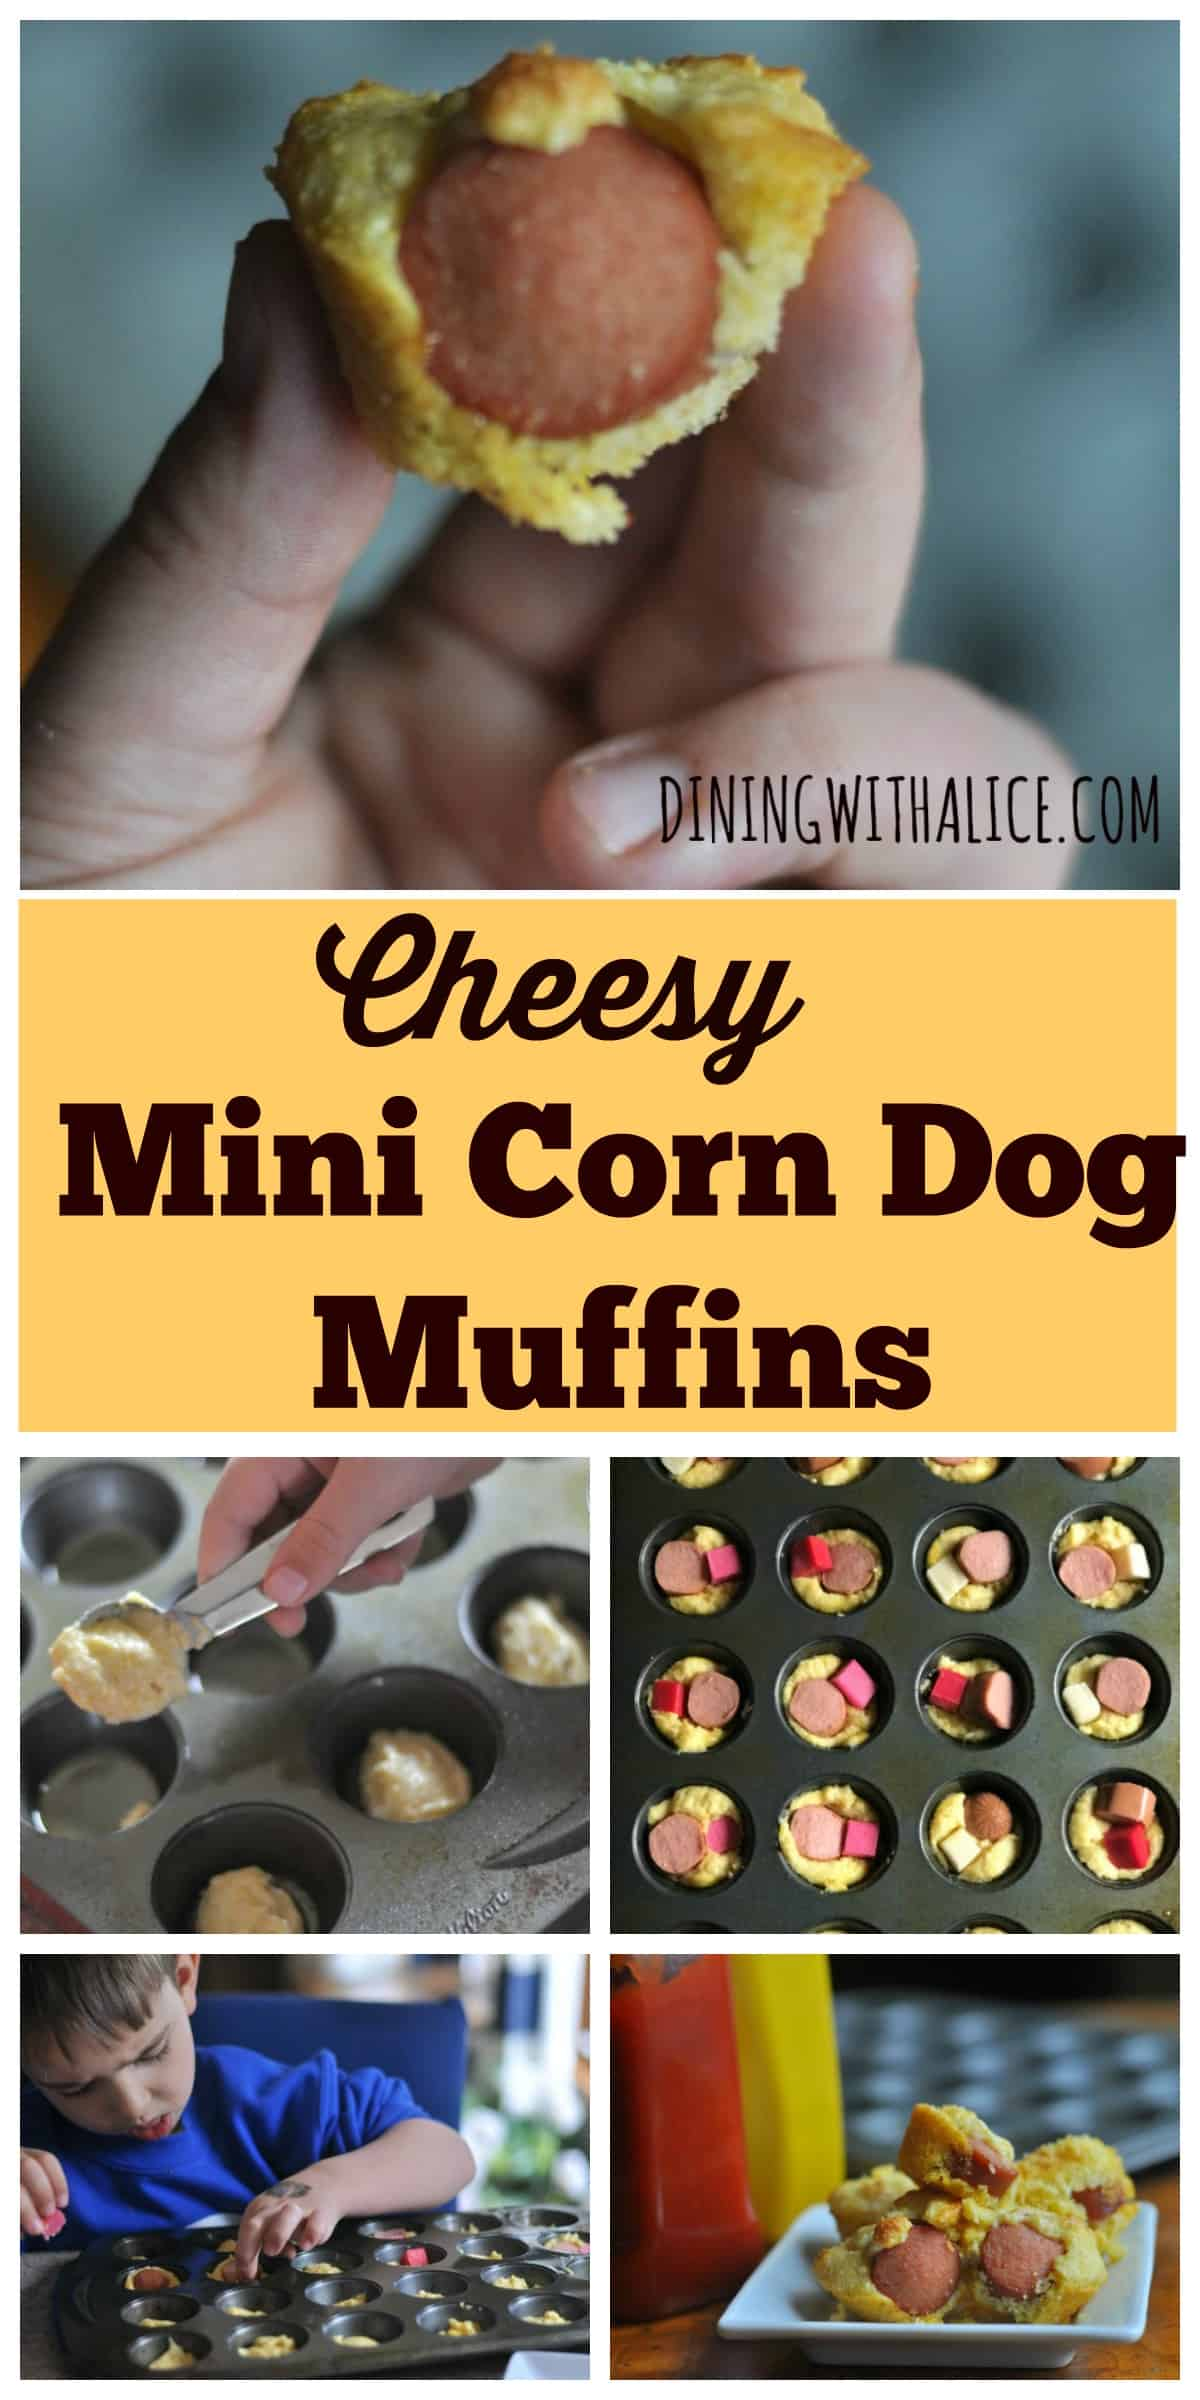 Cheesy Mini Corn Dog Muffins Simple Recipe A super easy Cheesy Mini Corn Dog Muffins recipe that makes a great weeknight meal, fun school lunch, or game day appetizer. http://diningwithalice.com/kids/cheesy-mini-corn-dog-muffins/